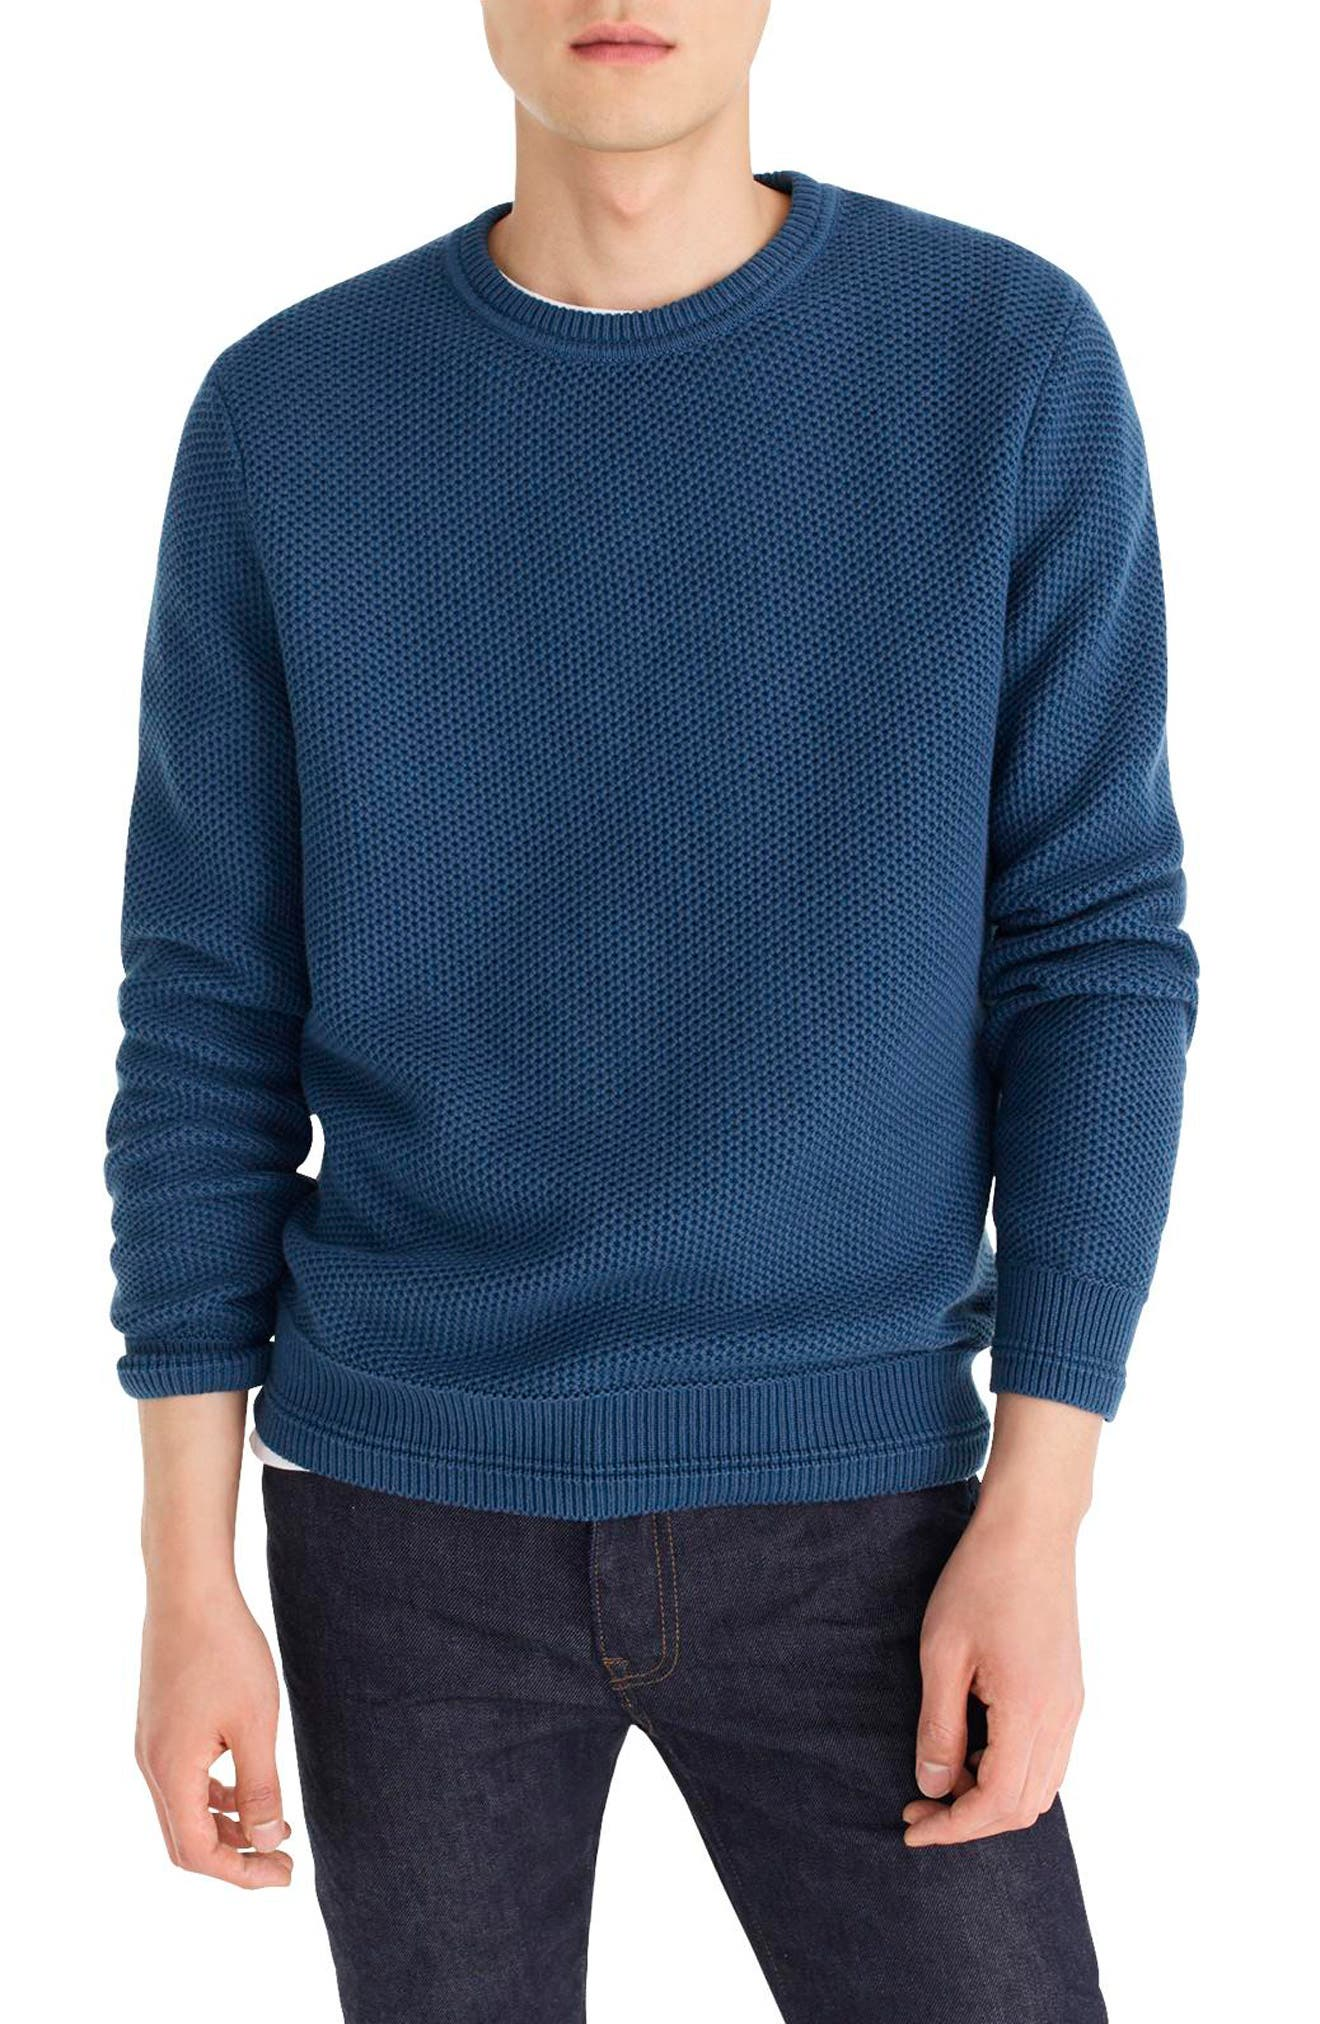 Honeycomb Cotton Crewneck Sweater,                         Main,                         color, 400